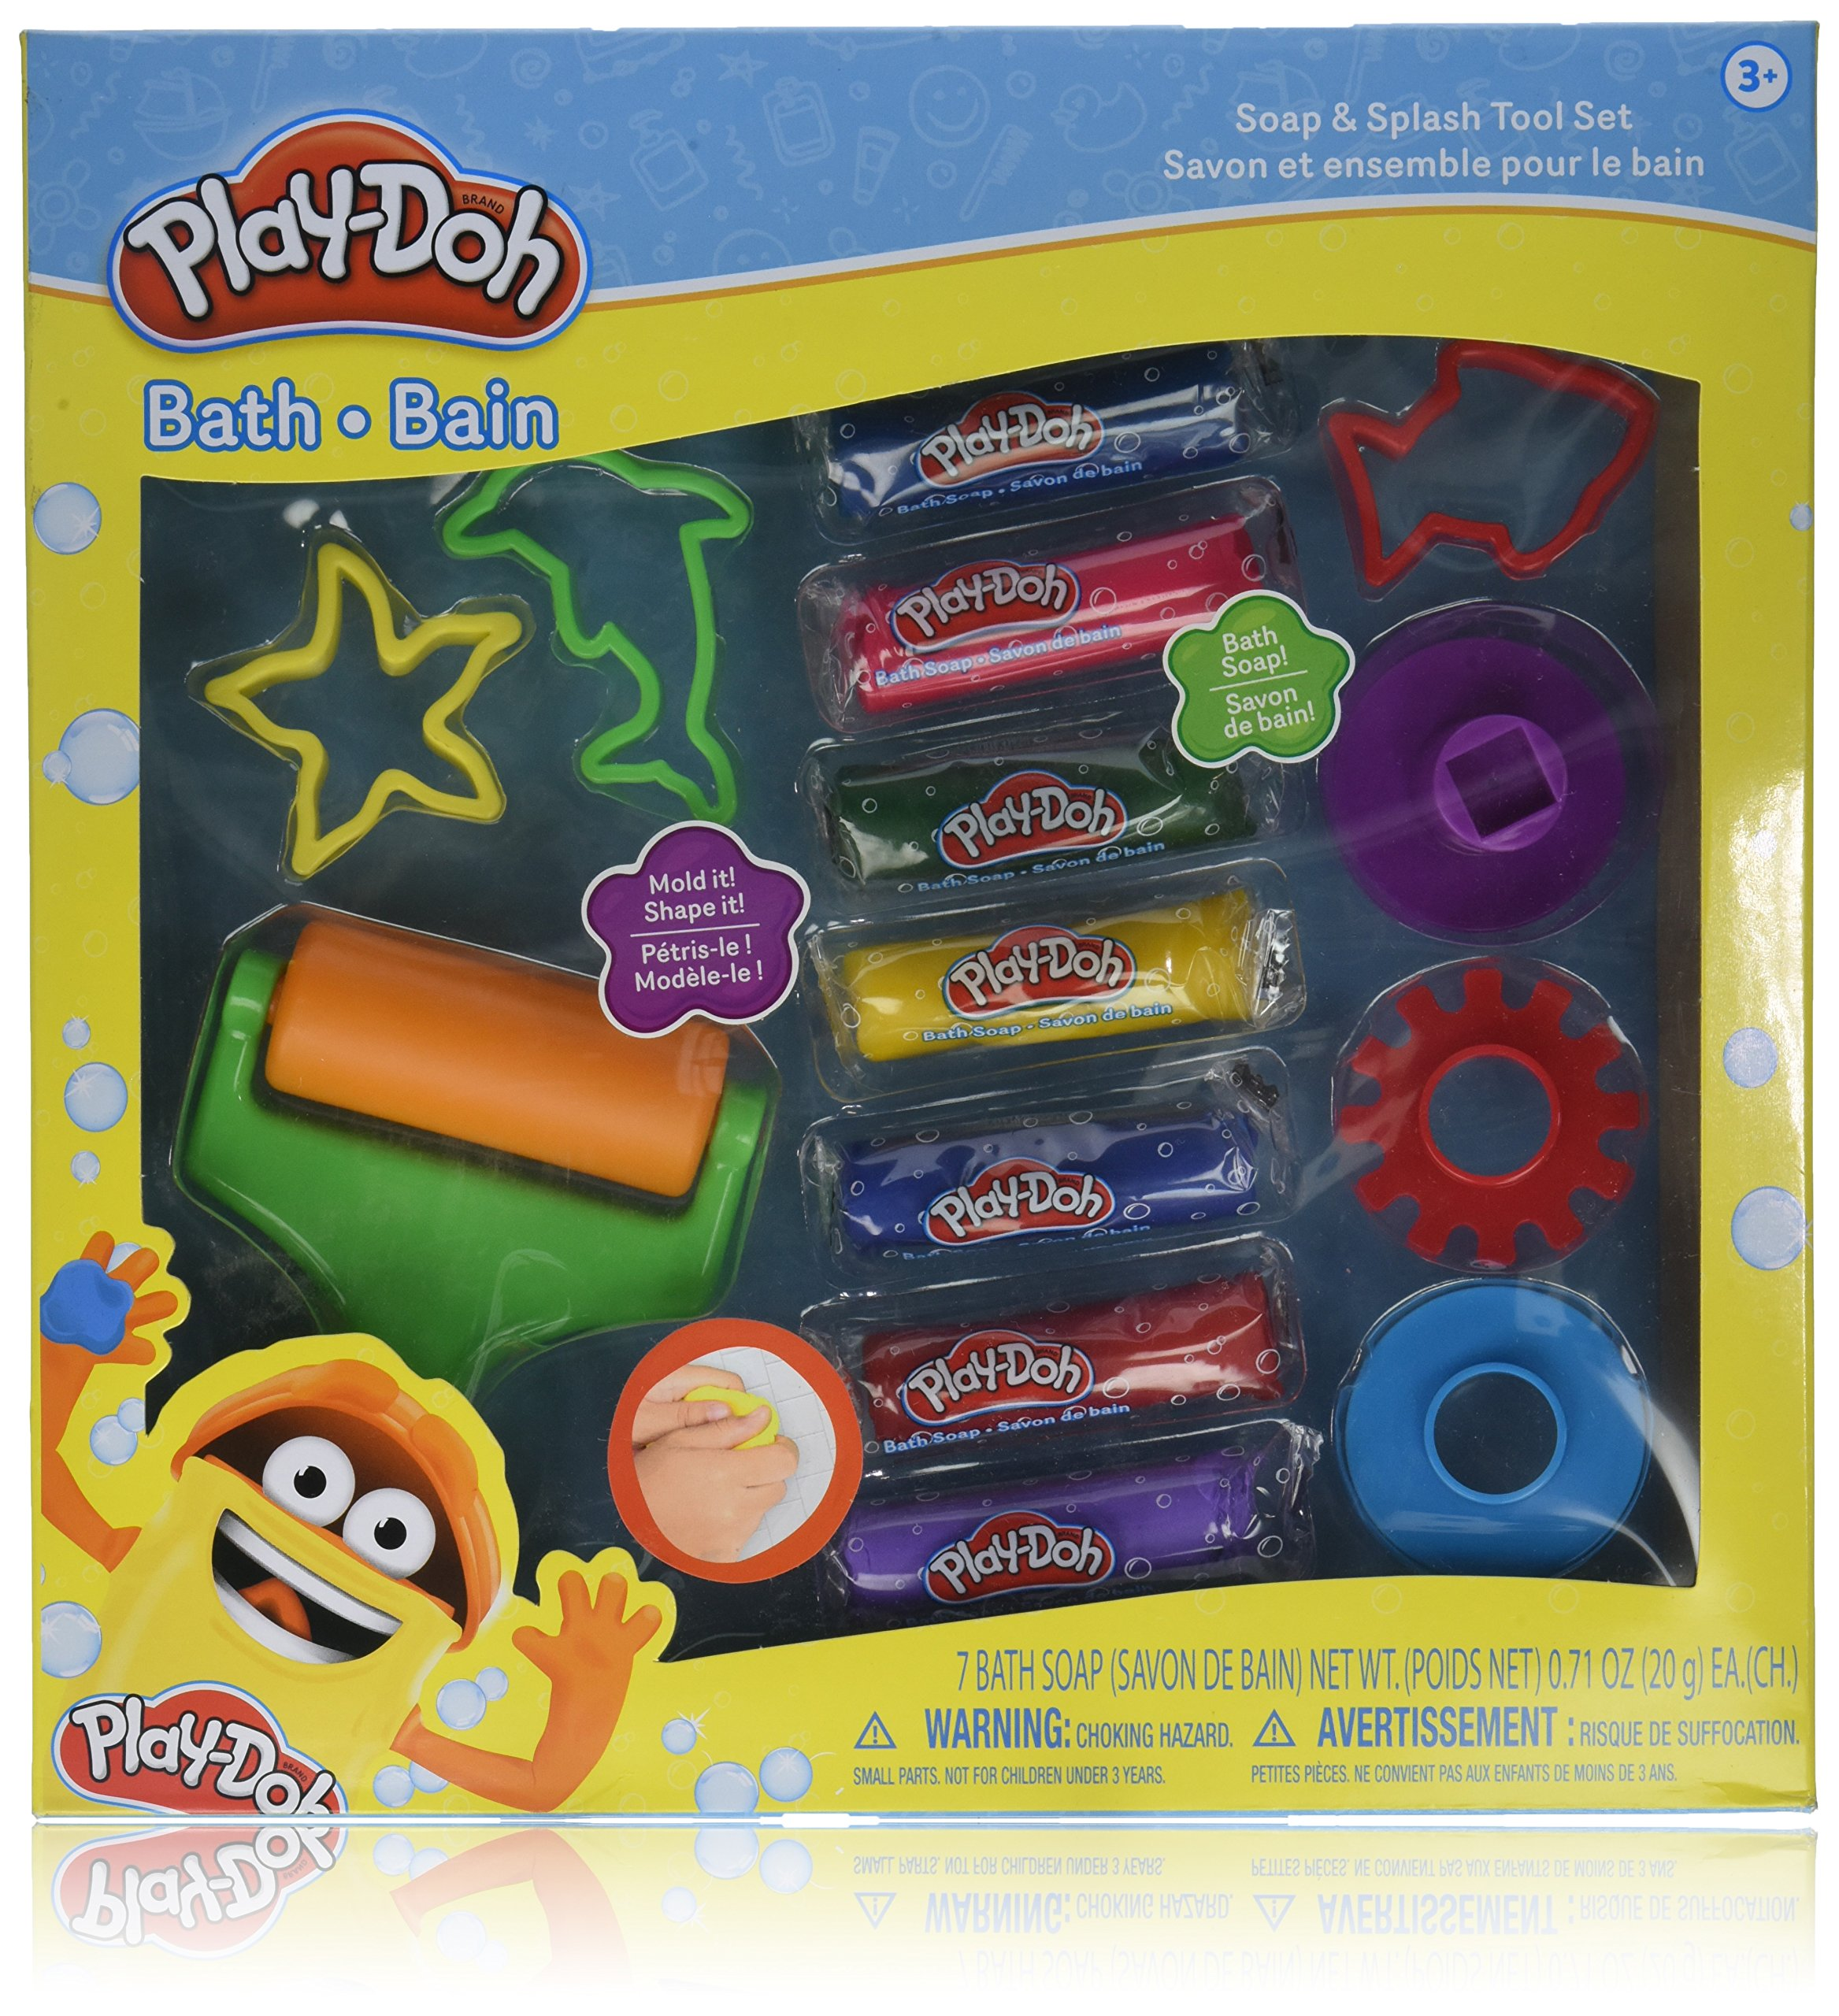 Townley Girl Play Doh Bath Soap Molder Set with 7 different colors of moldable soap and